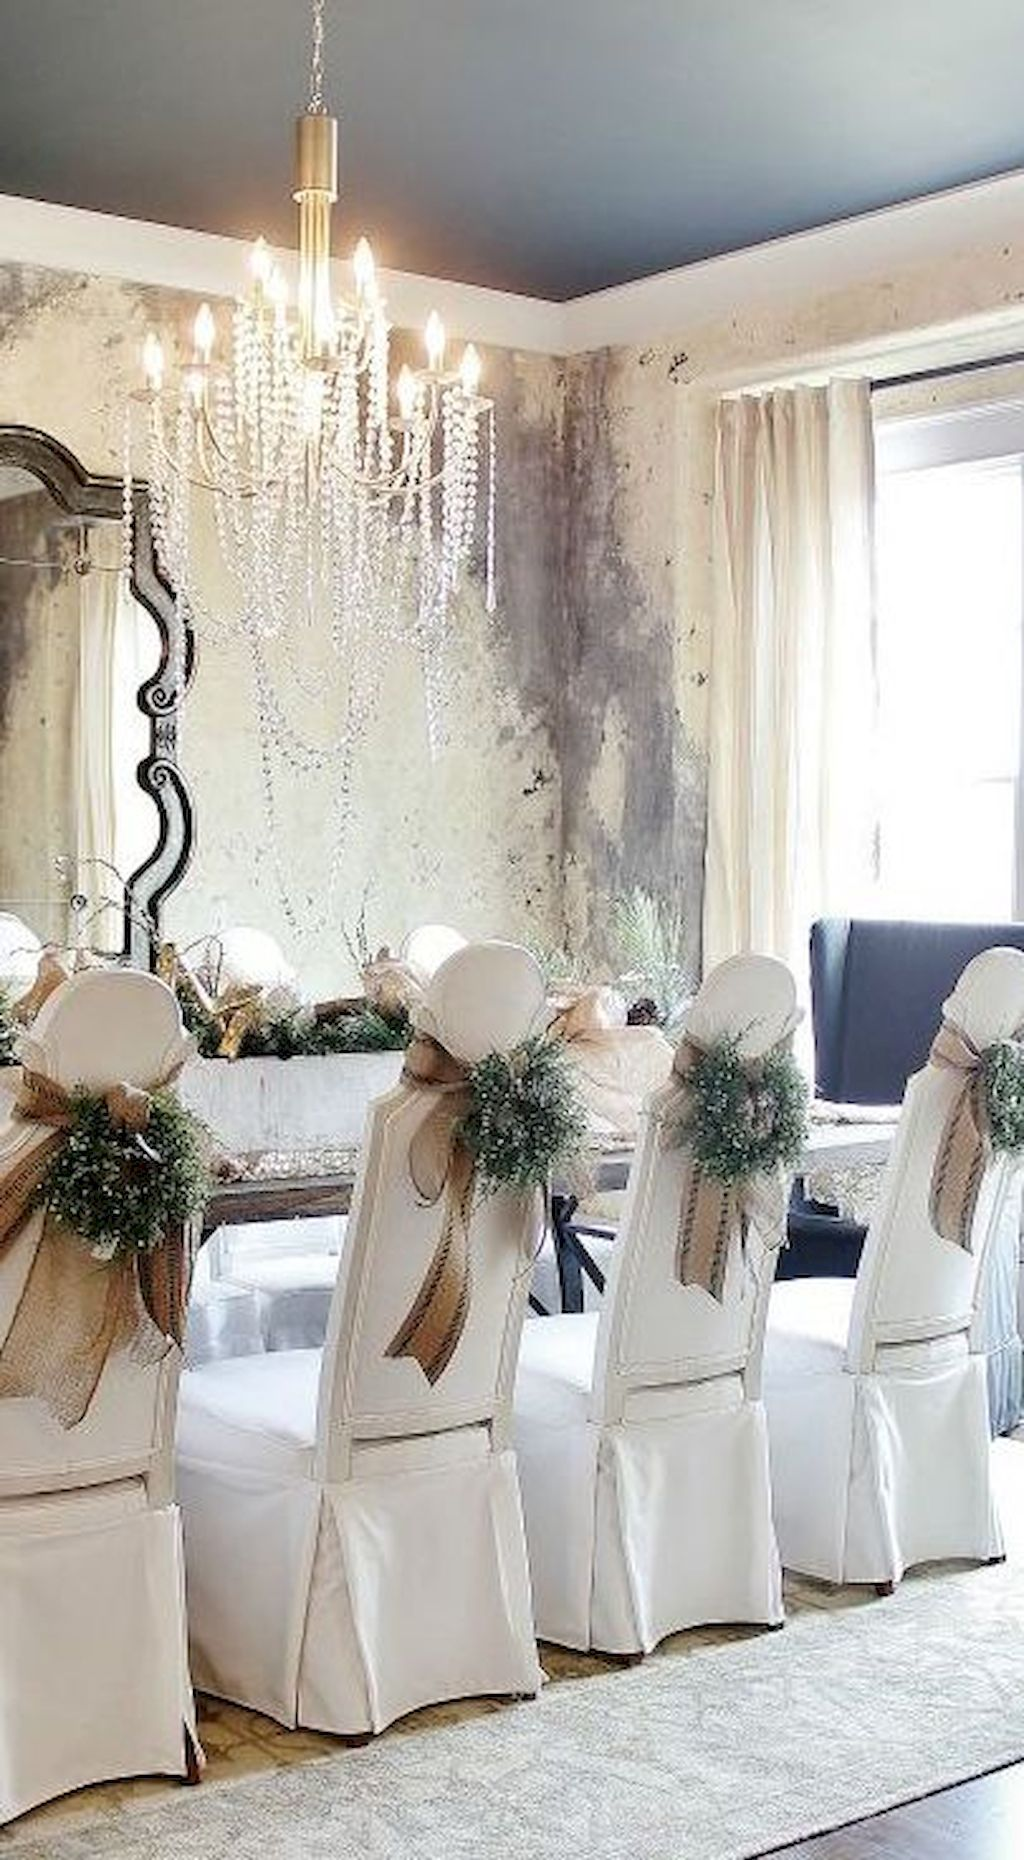 70 beautiful french country dining room decor ideas pinterest 70 beautiful french country dining room decor ideas pinterest detalles decorativos ideas navideas y comedores solutioingenieria Images